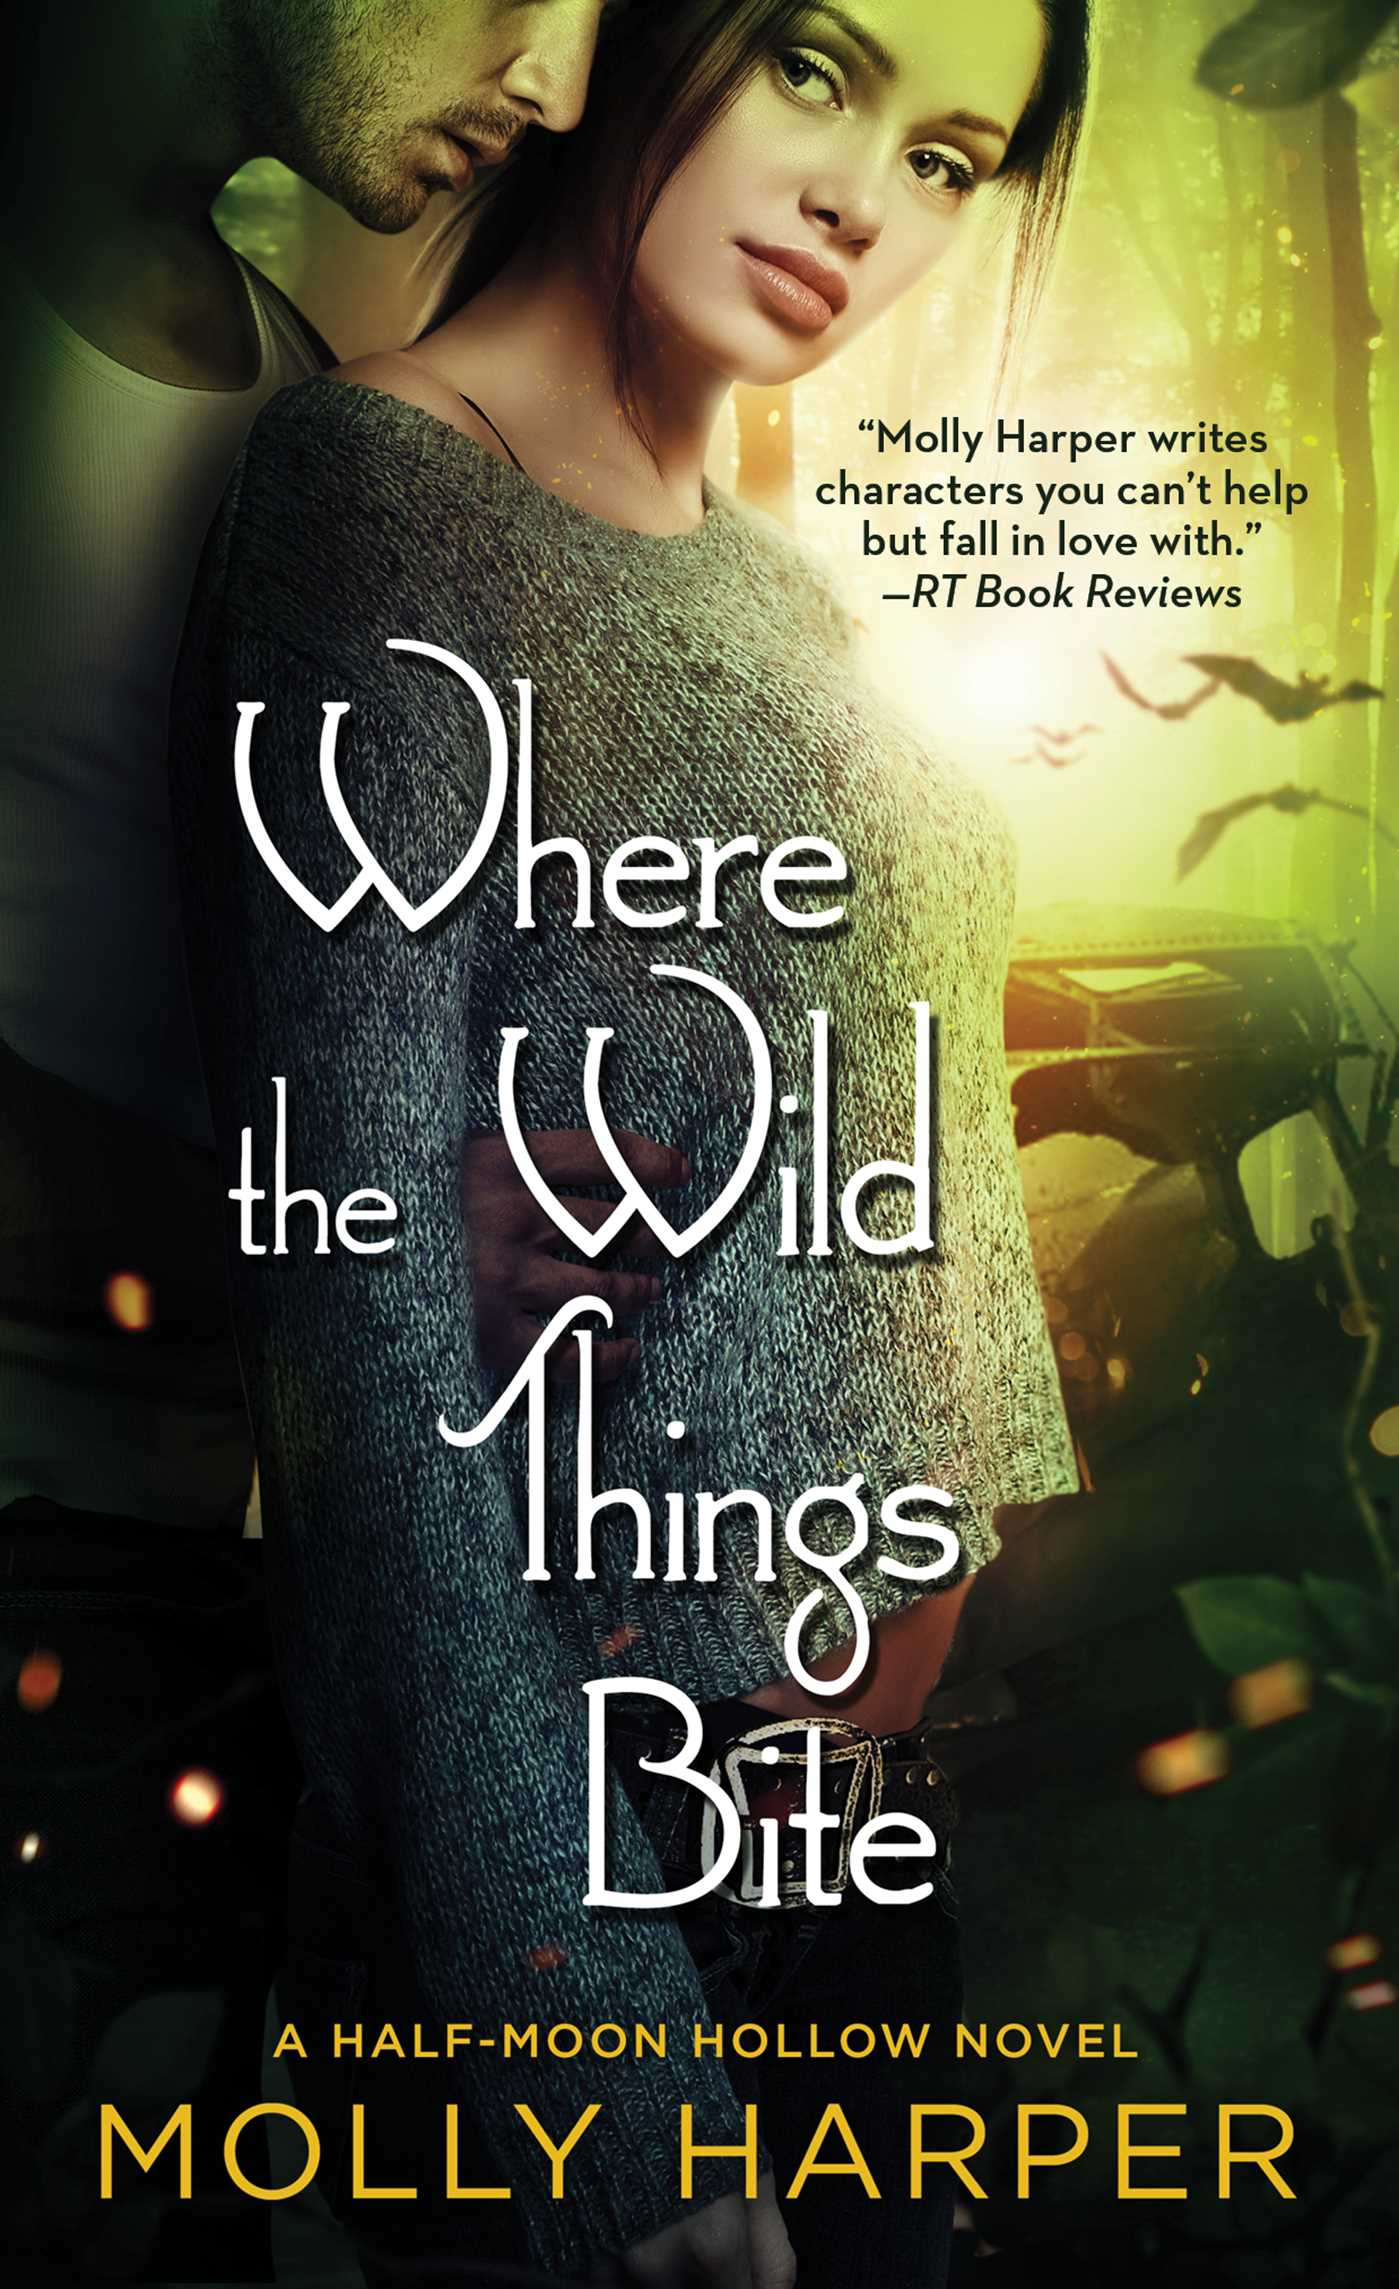 Where the wild things bite 9781476794402 hr